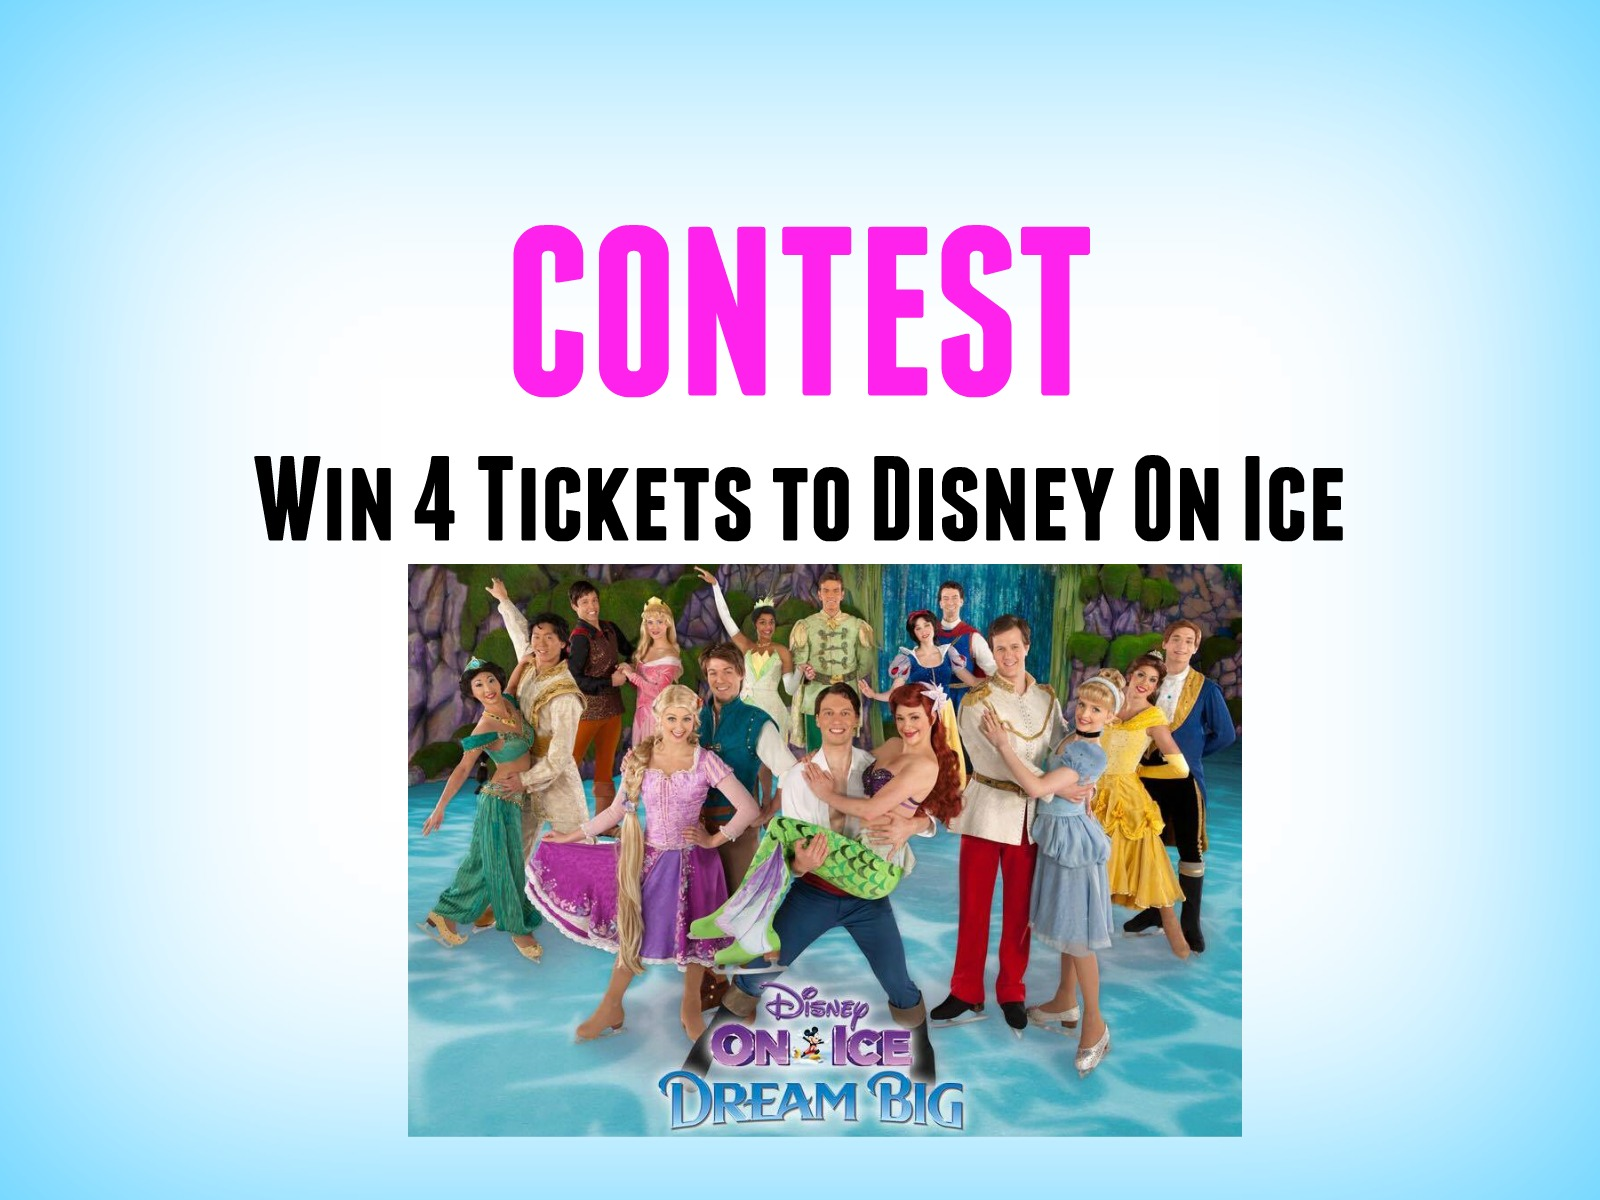 CONTEST: WIN DISNEY ON ICE TICKETS